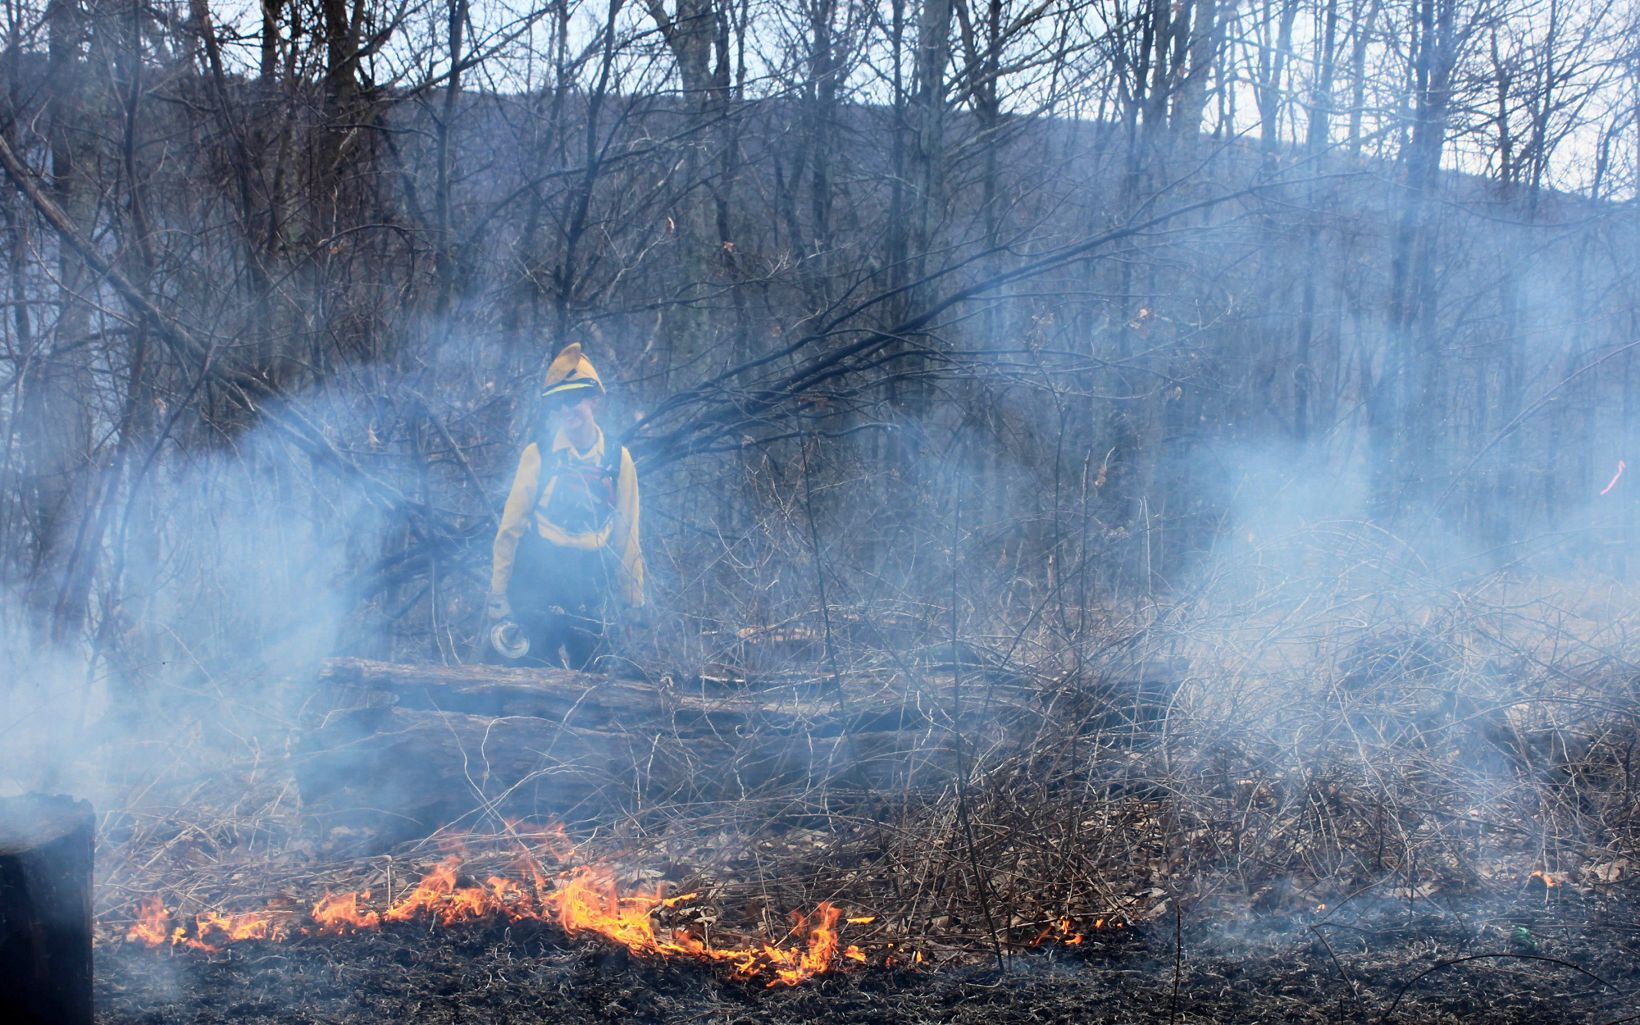 A woman wearing yellow protective fire gear and a yellow helmet stands to a small fire as it burns through the leafy vegetation on the ground. She is envolved in white smoke.